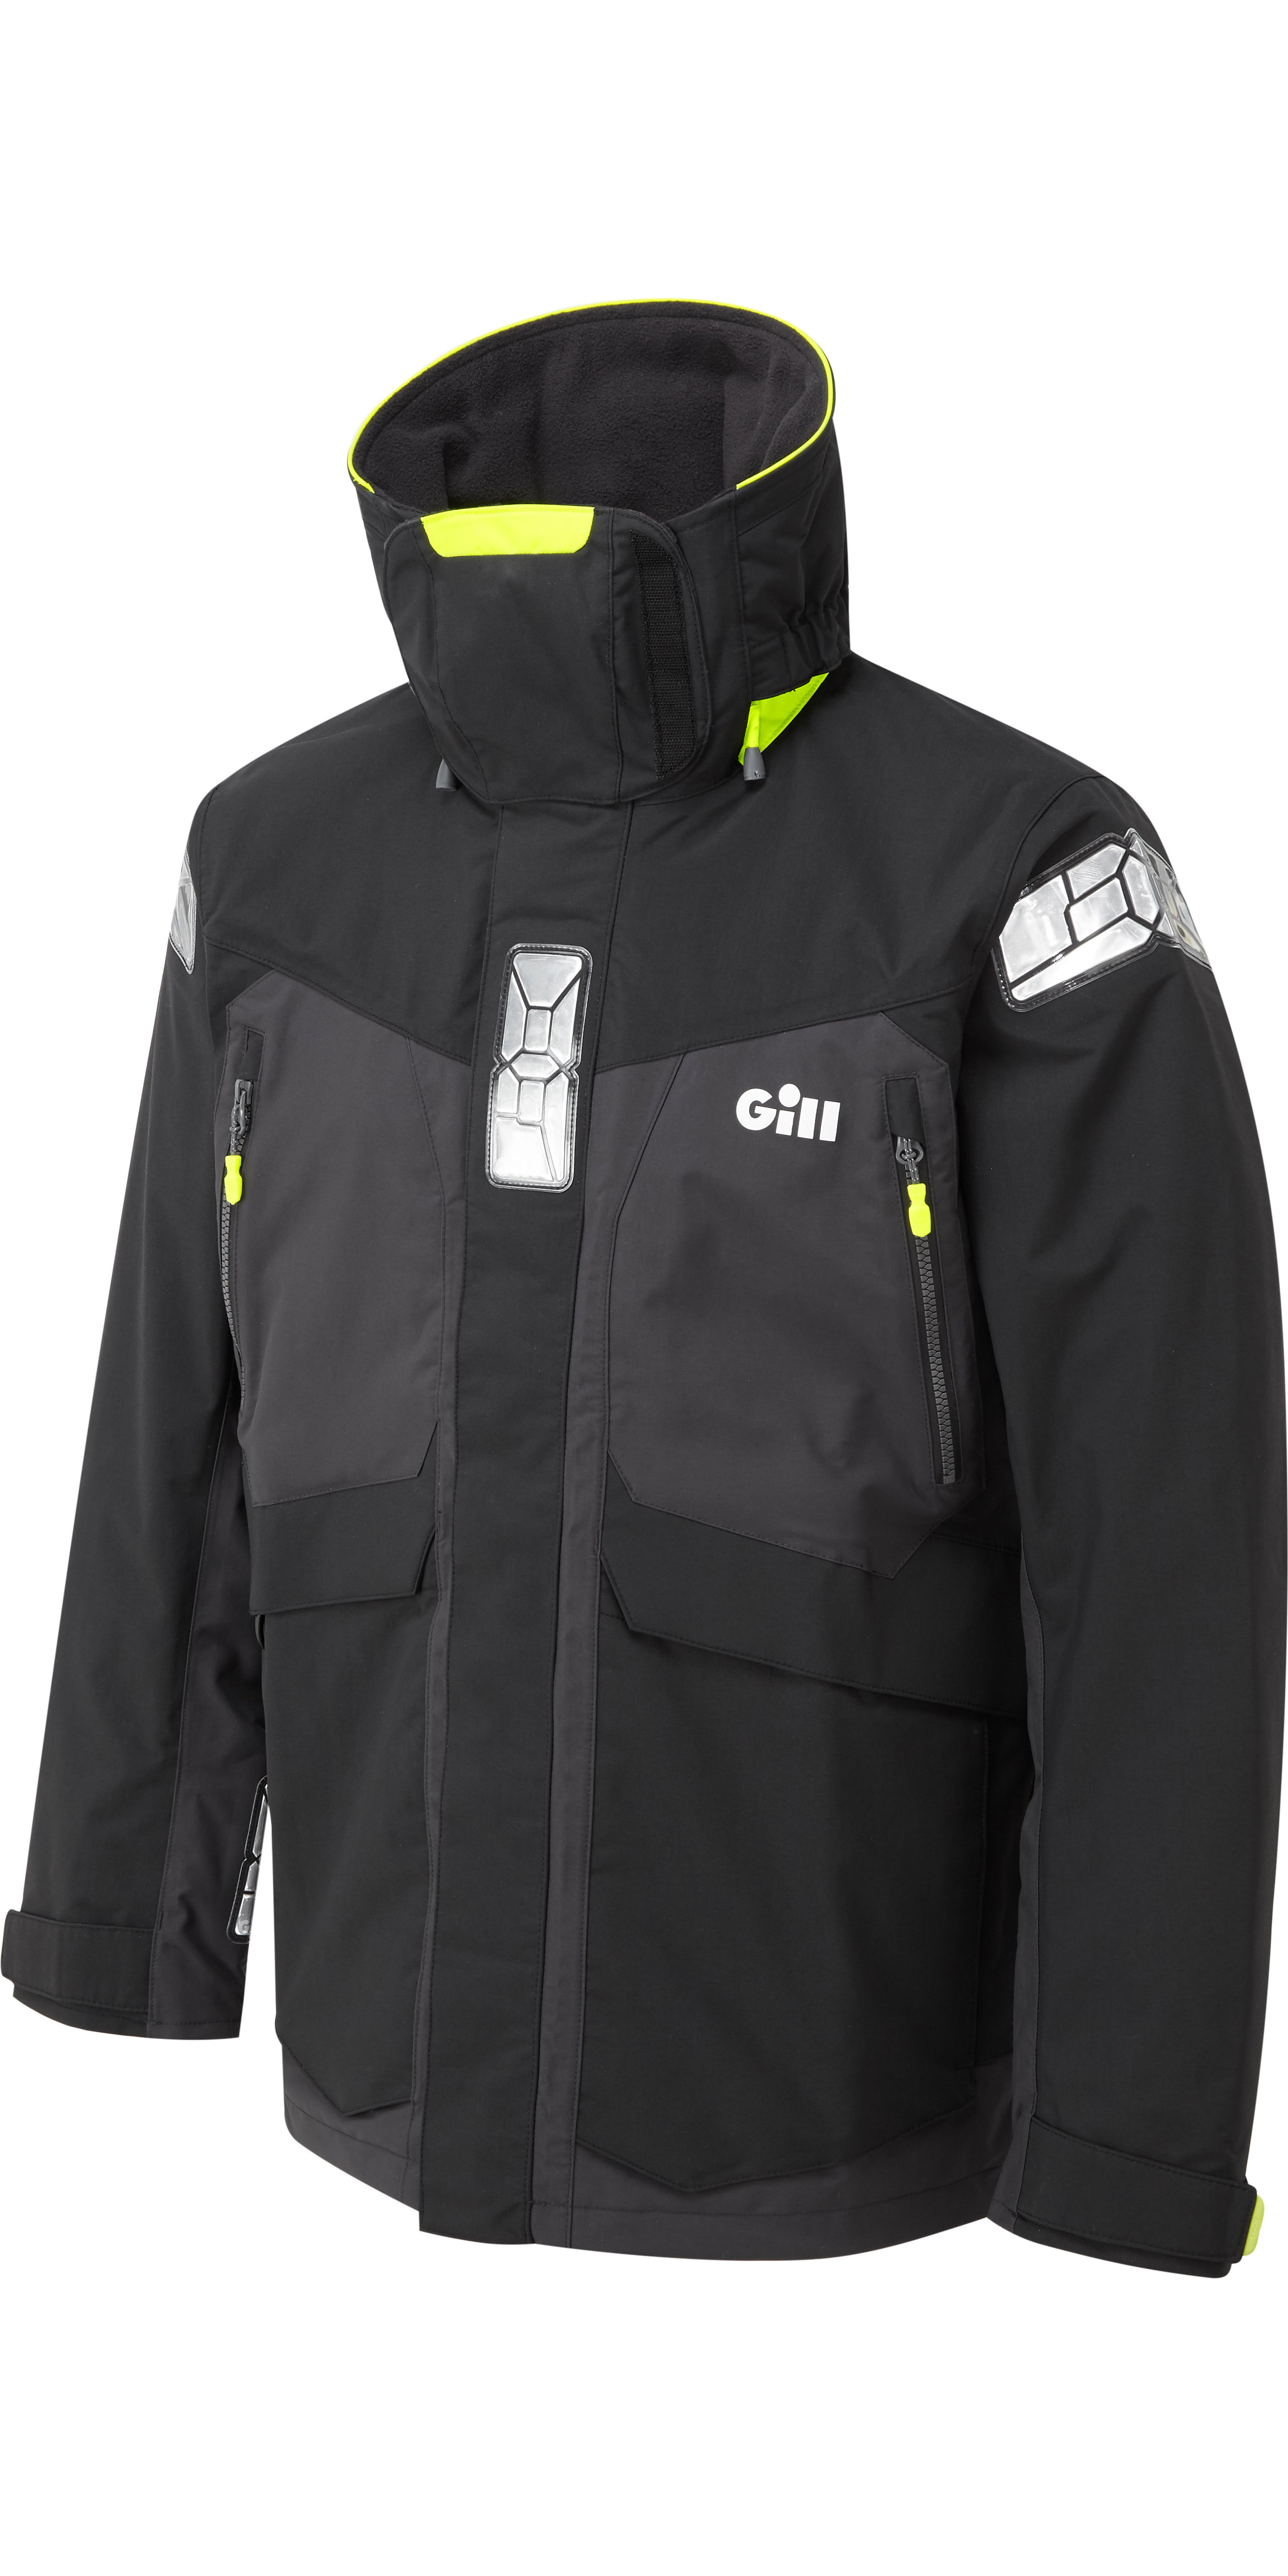 2020 Gill OS2 Mens Offshore Jacket & Trouser Combi Set - Black